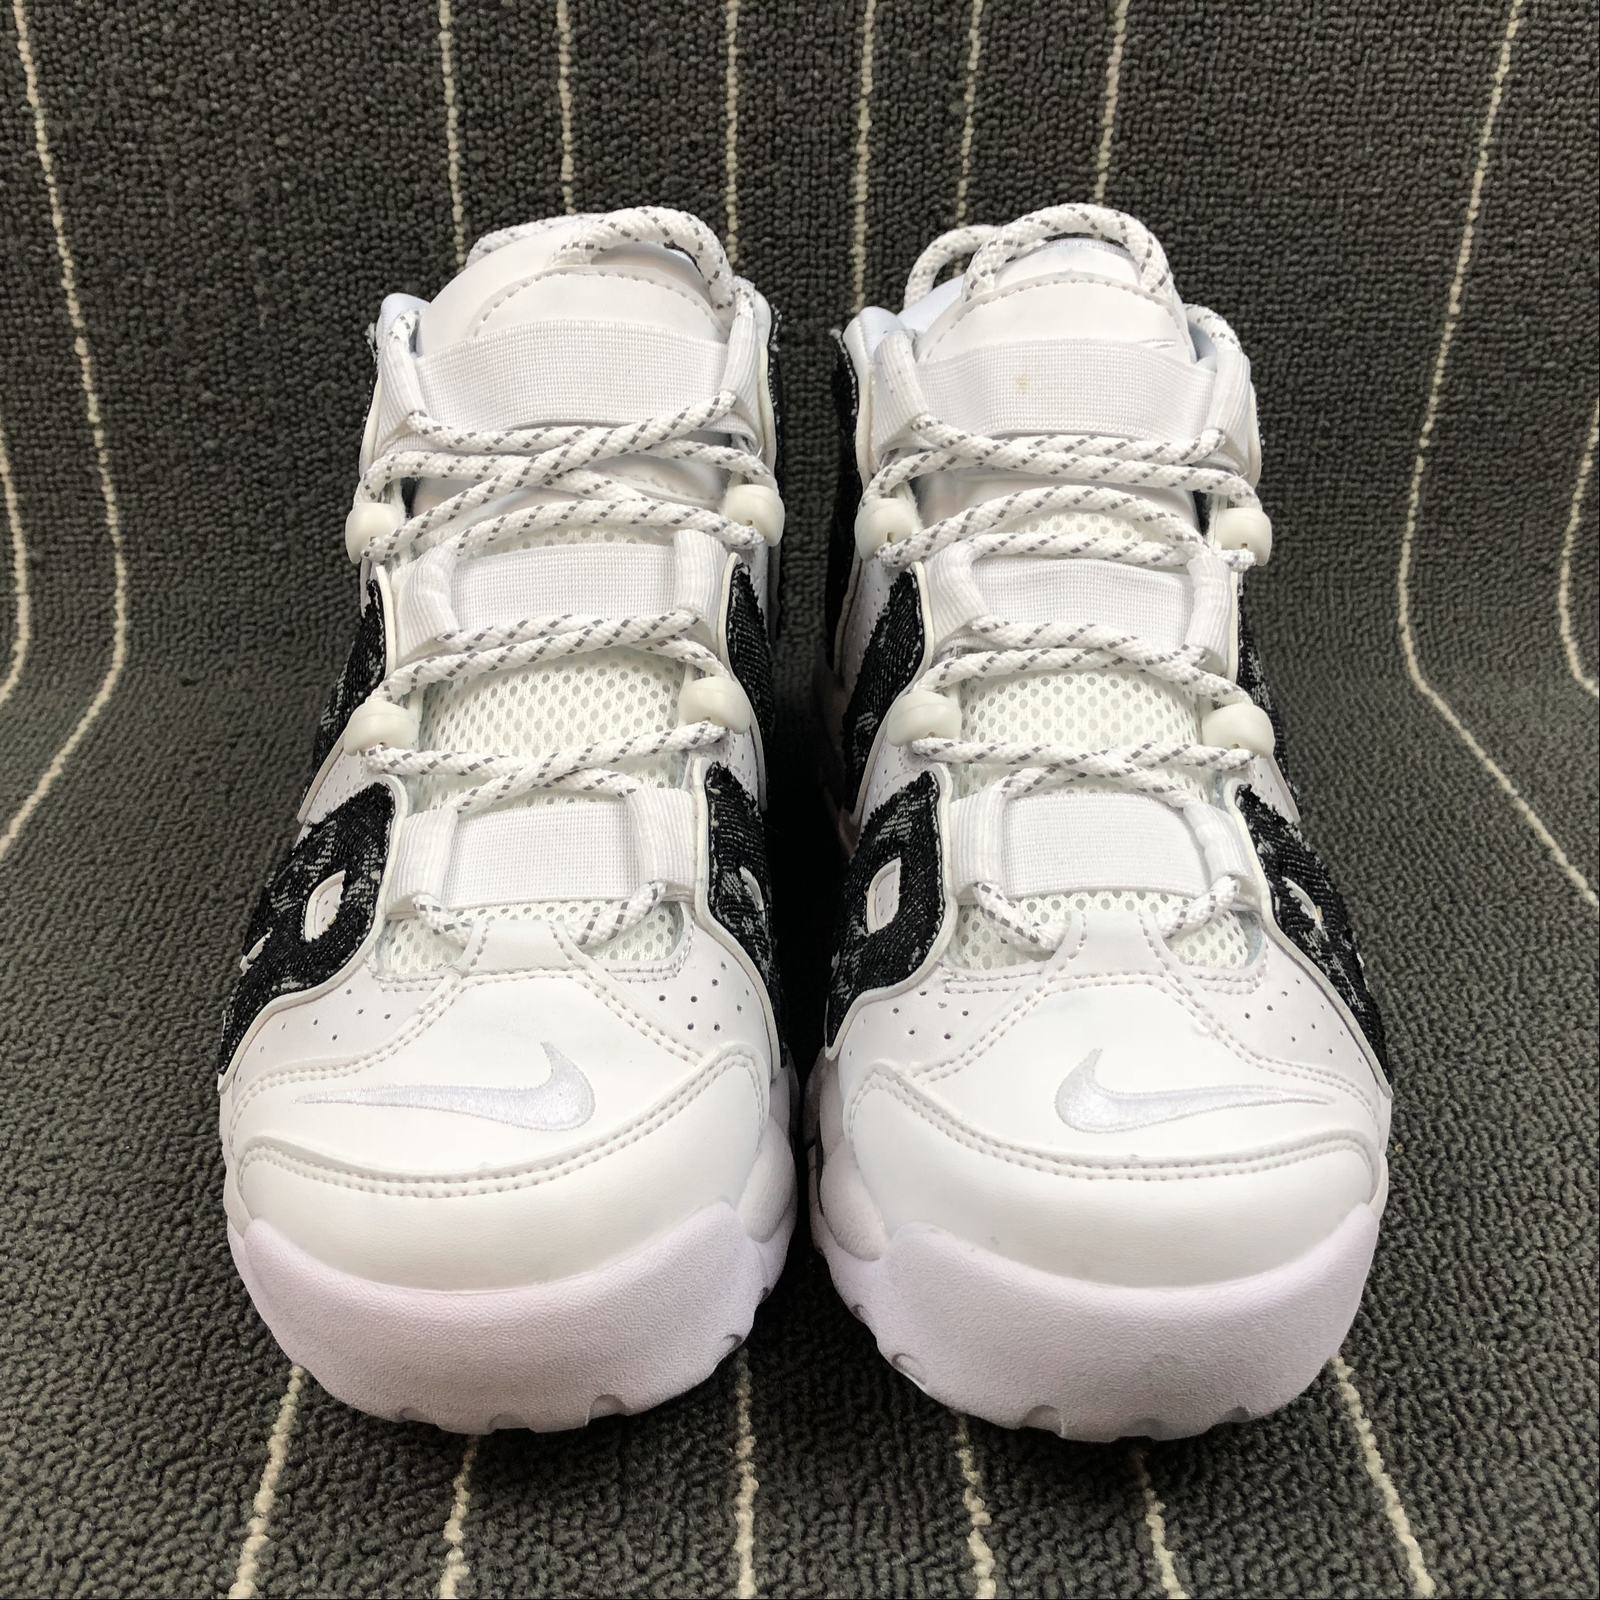 Женские кроссовки Nike Air More Uptempo 96 Women White,Black jeans - фото №3